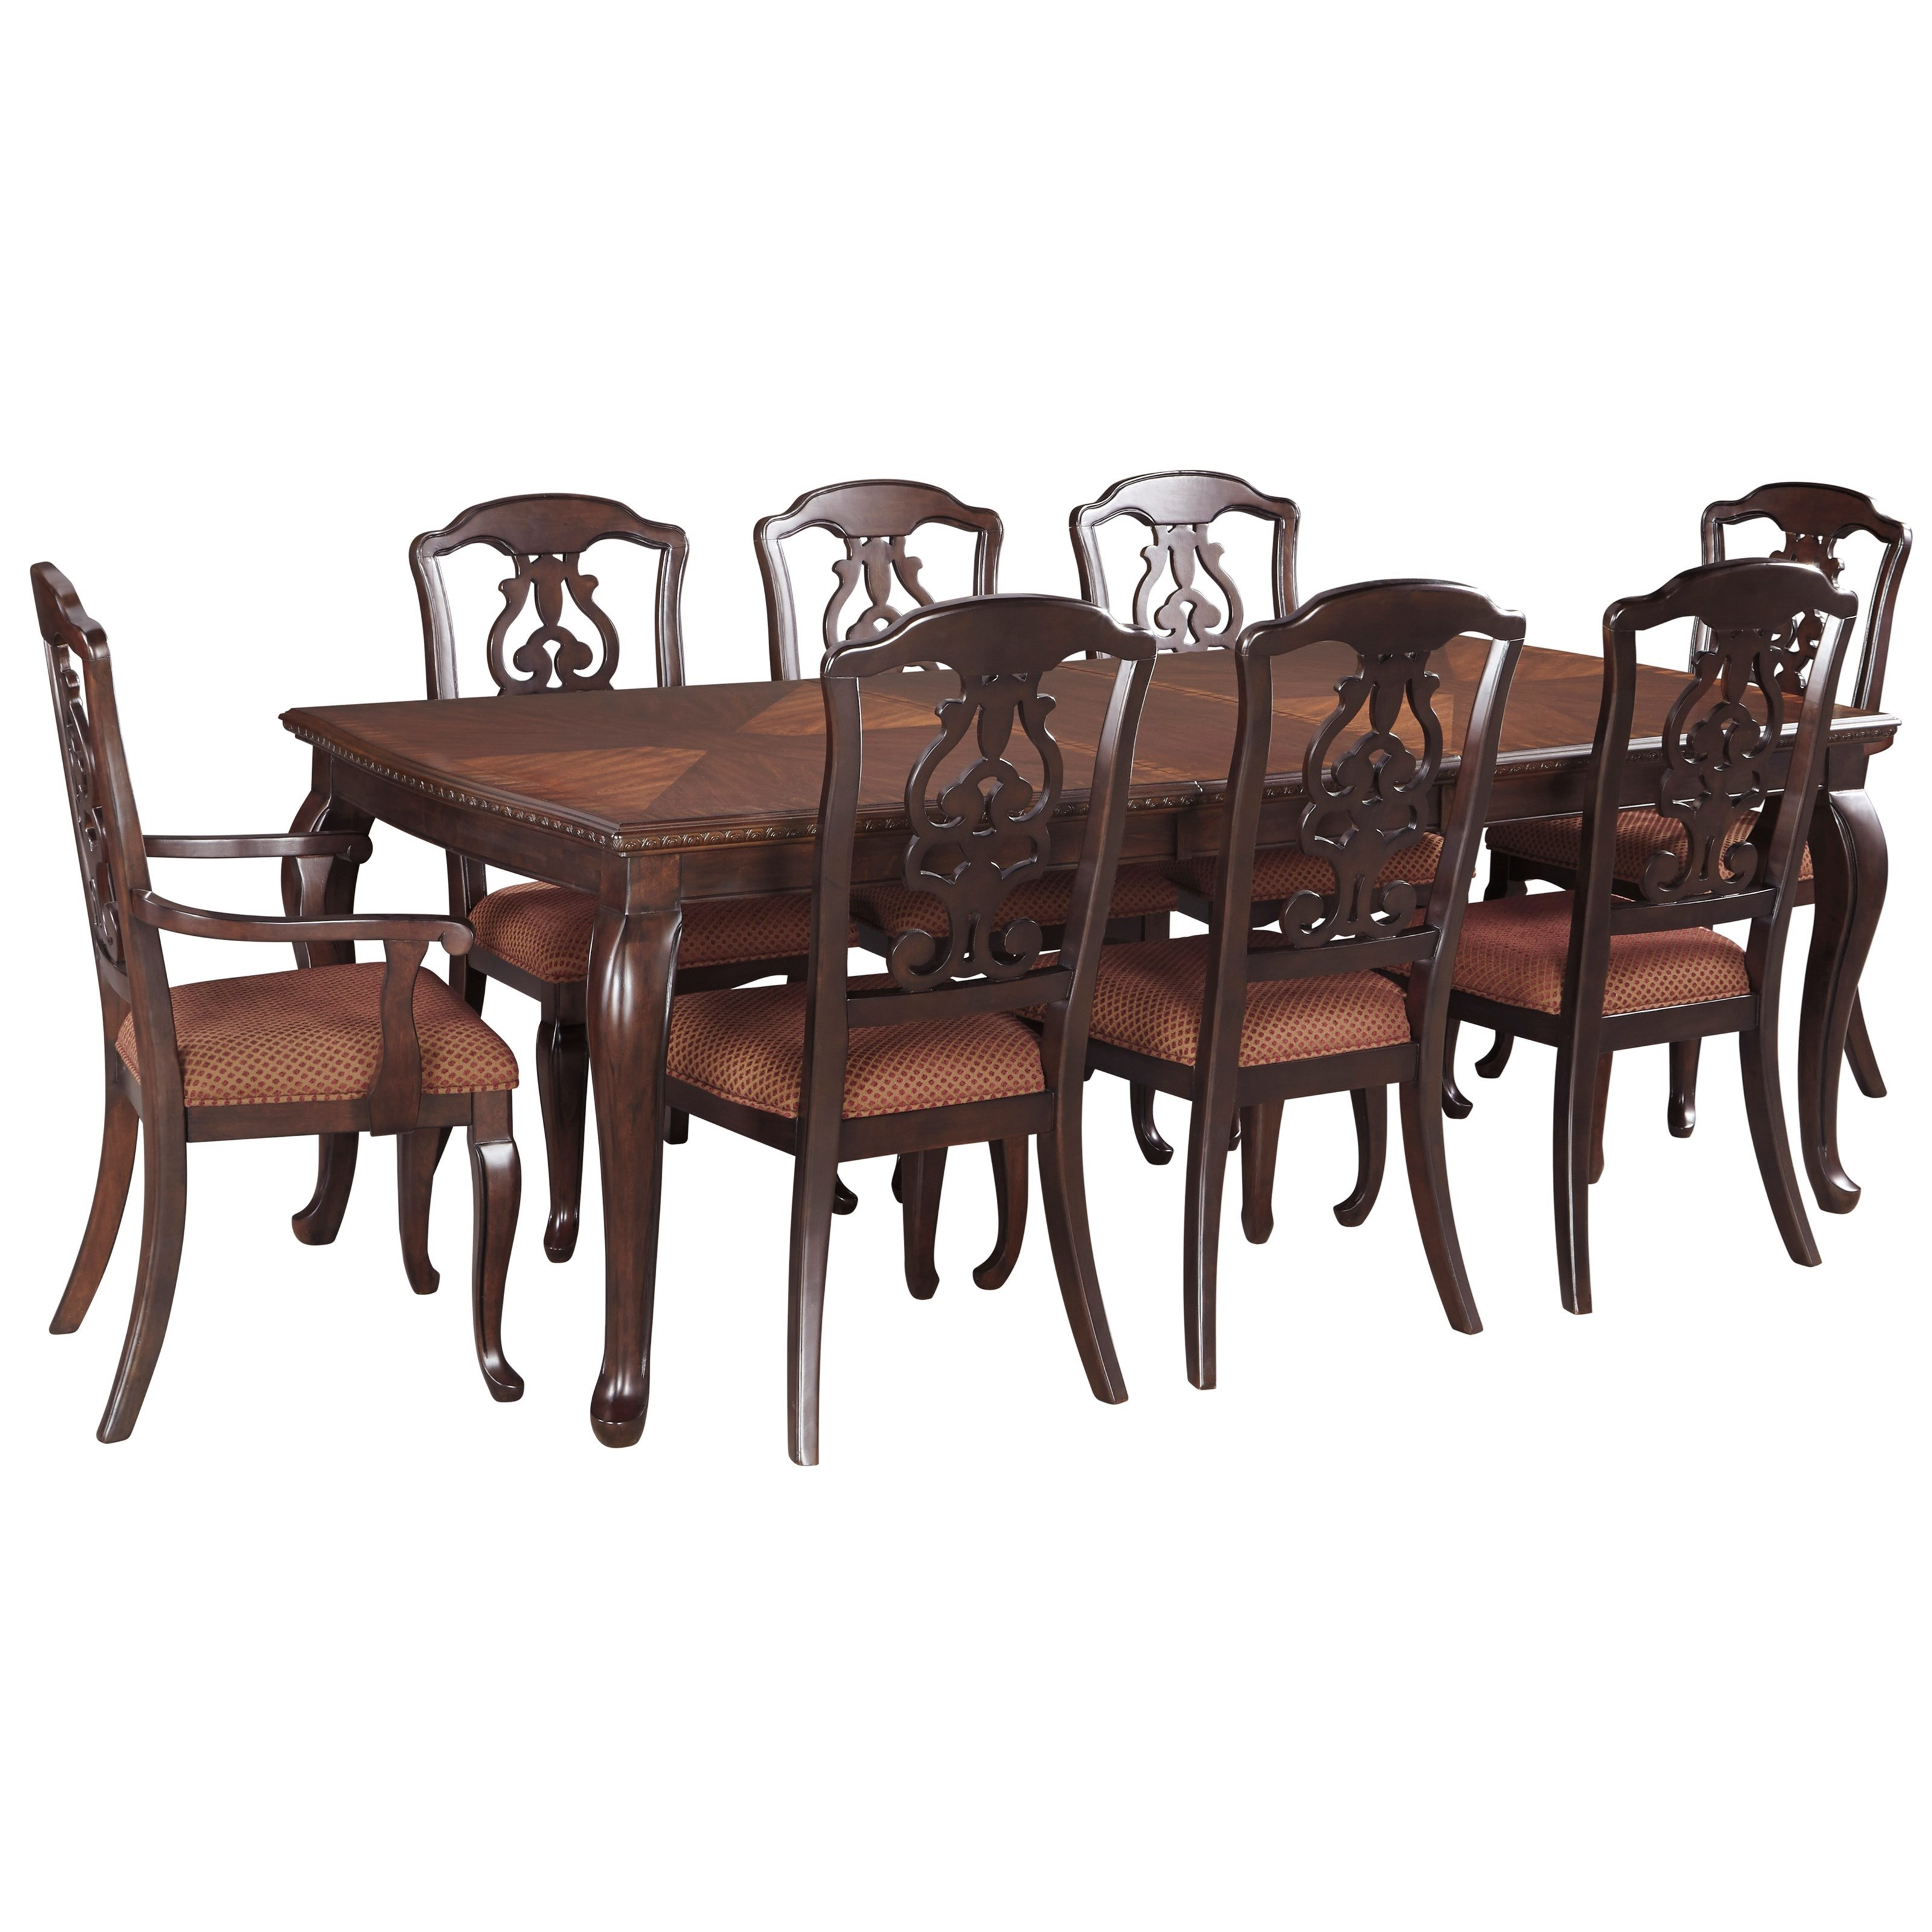 Signature design by ashley gladdenville traditional 9 for Traditional dining table with bench